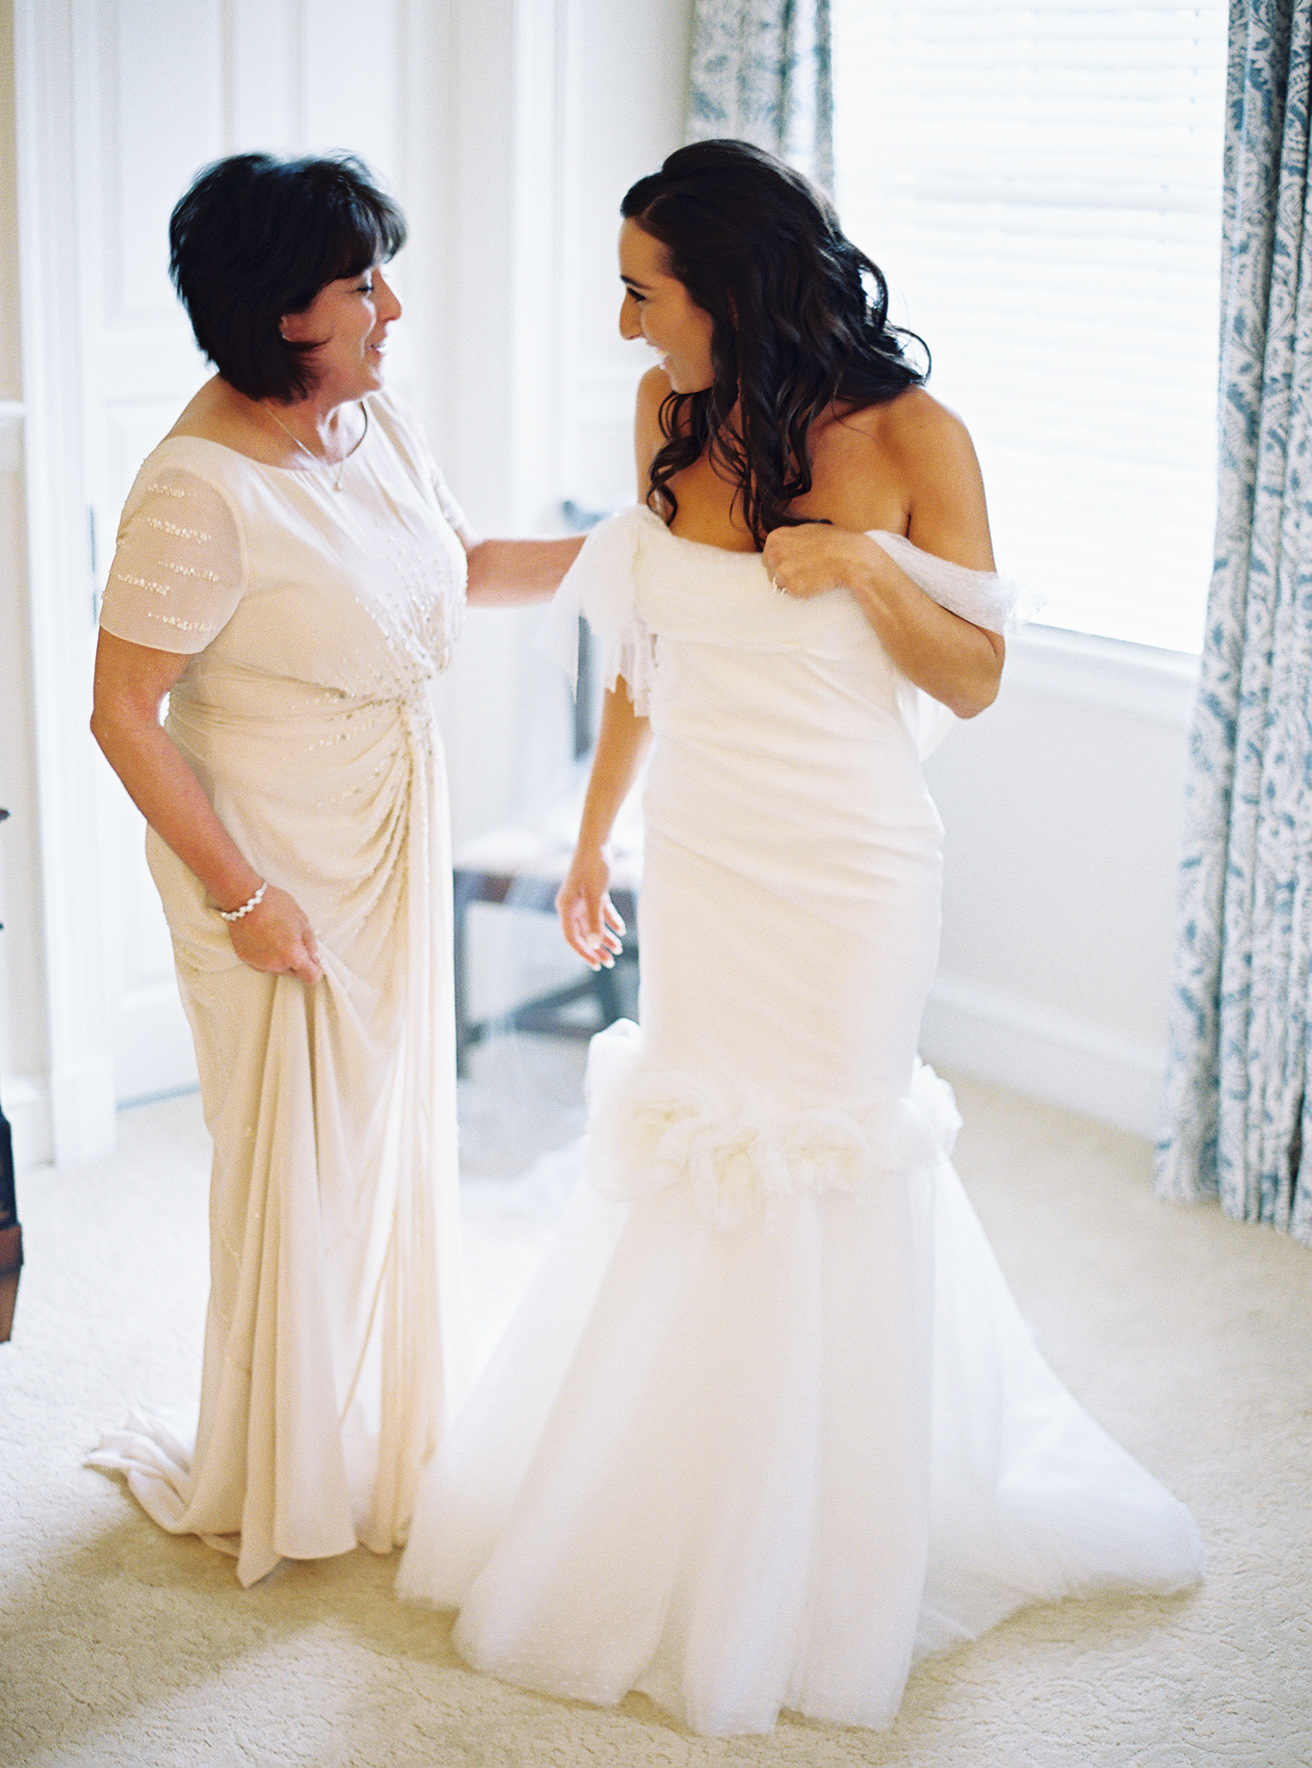 0134adam barnes photography keswick hall charlottesville virginia wedding.jpg